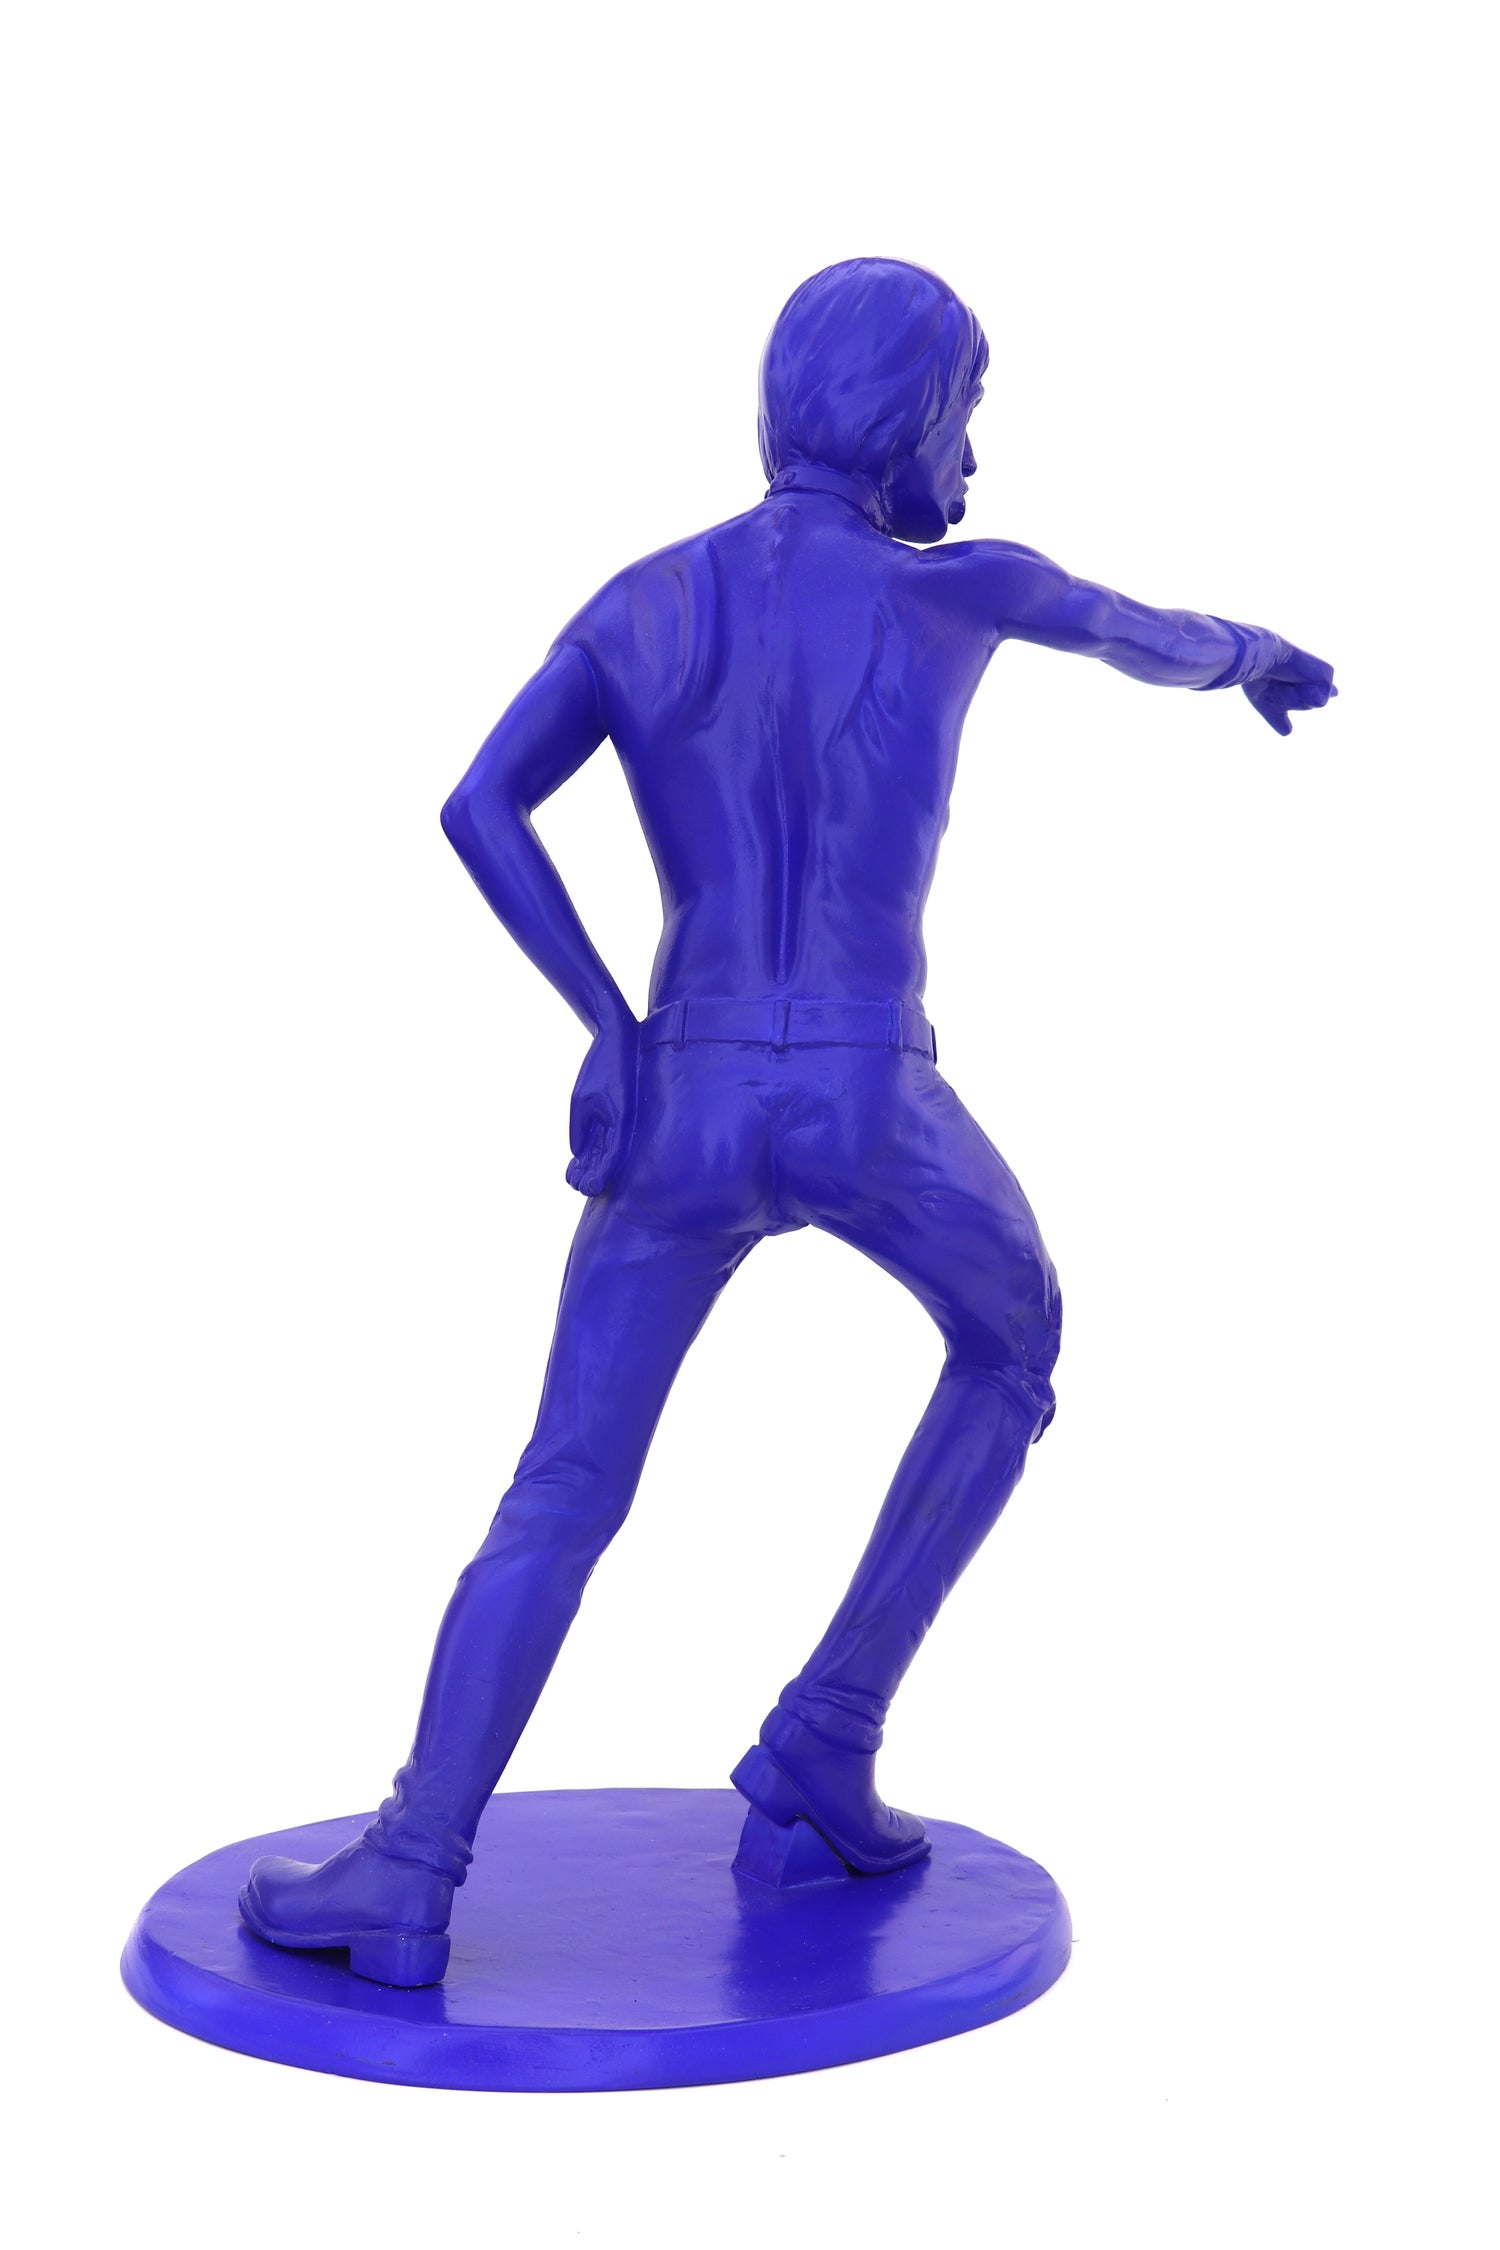 Image of IGGY POP (BLUE EDITION) LIMITED EDITION RELEASE